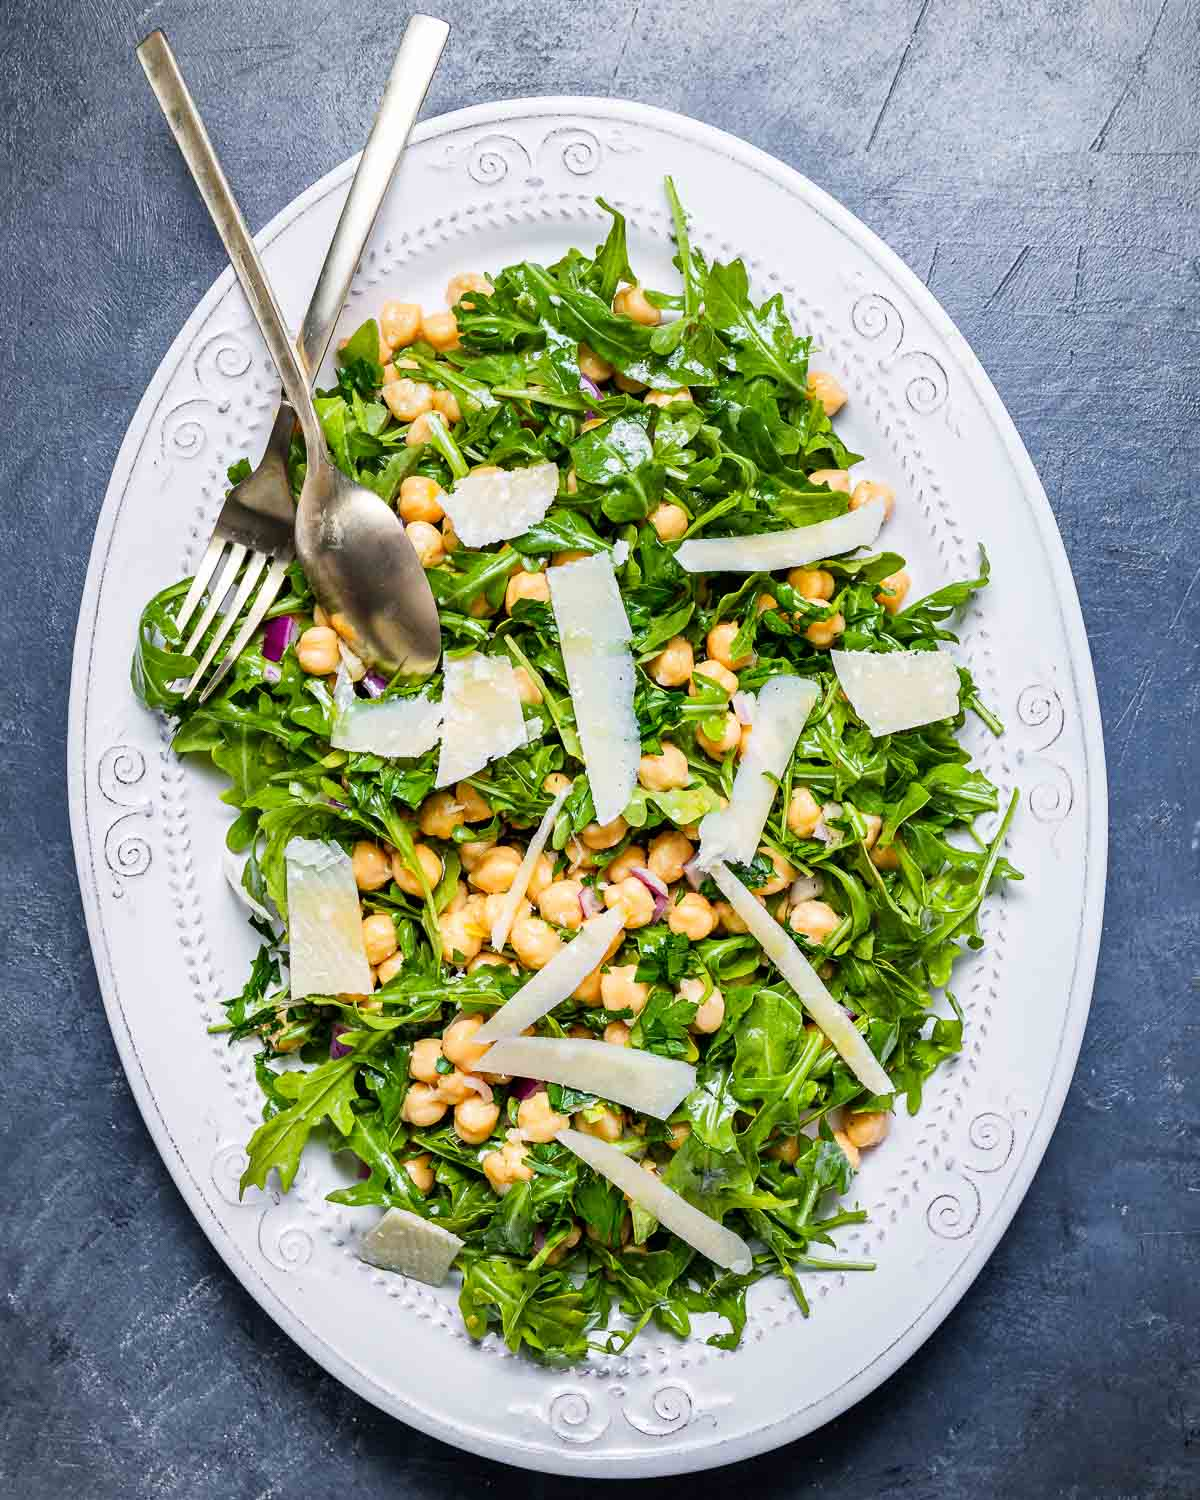 Overhead shot of white platter with arugula, chickpeas, and shaved cheese on blue board.